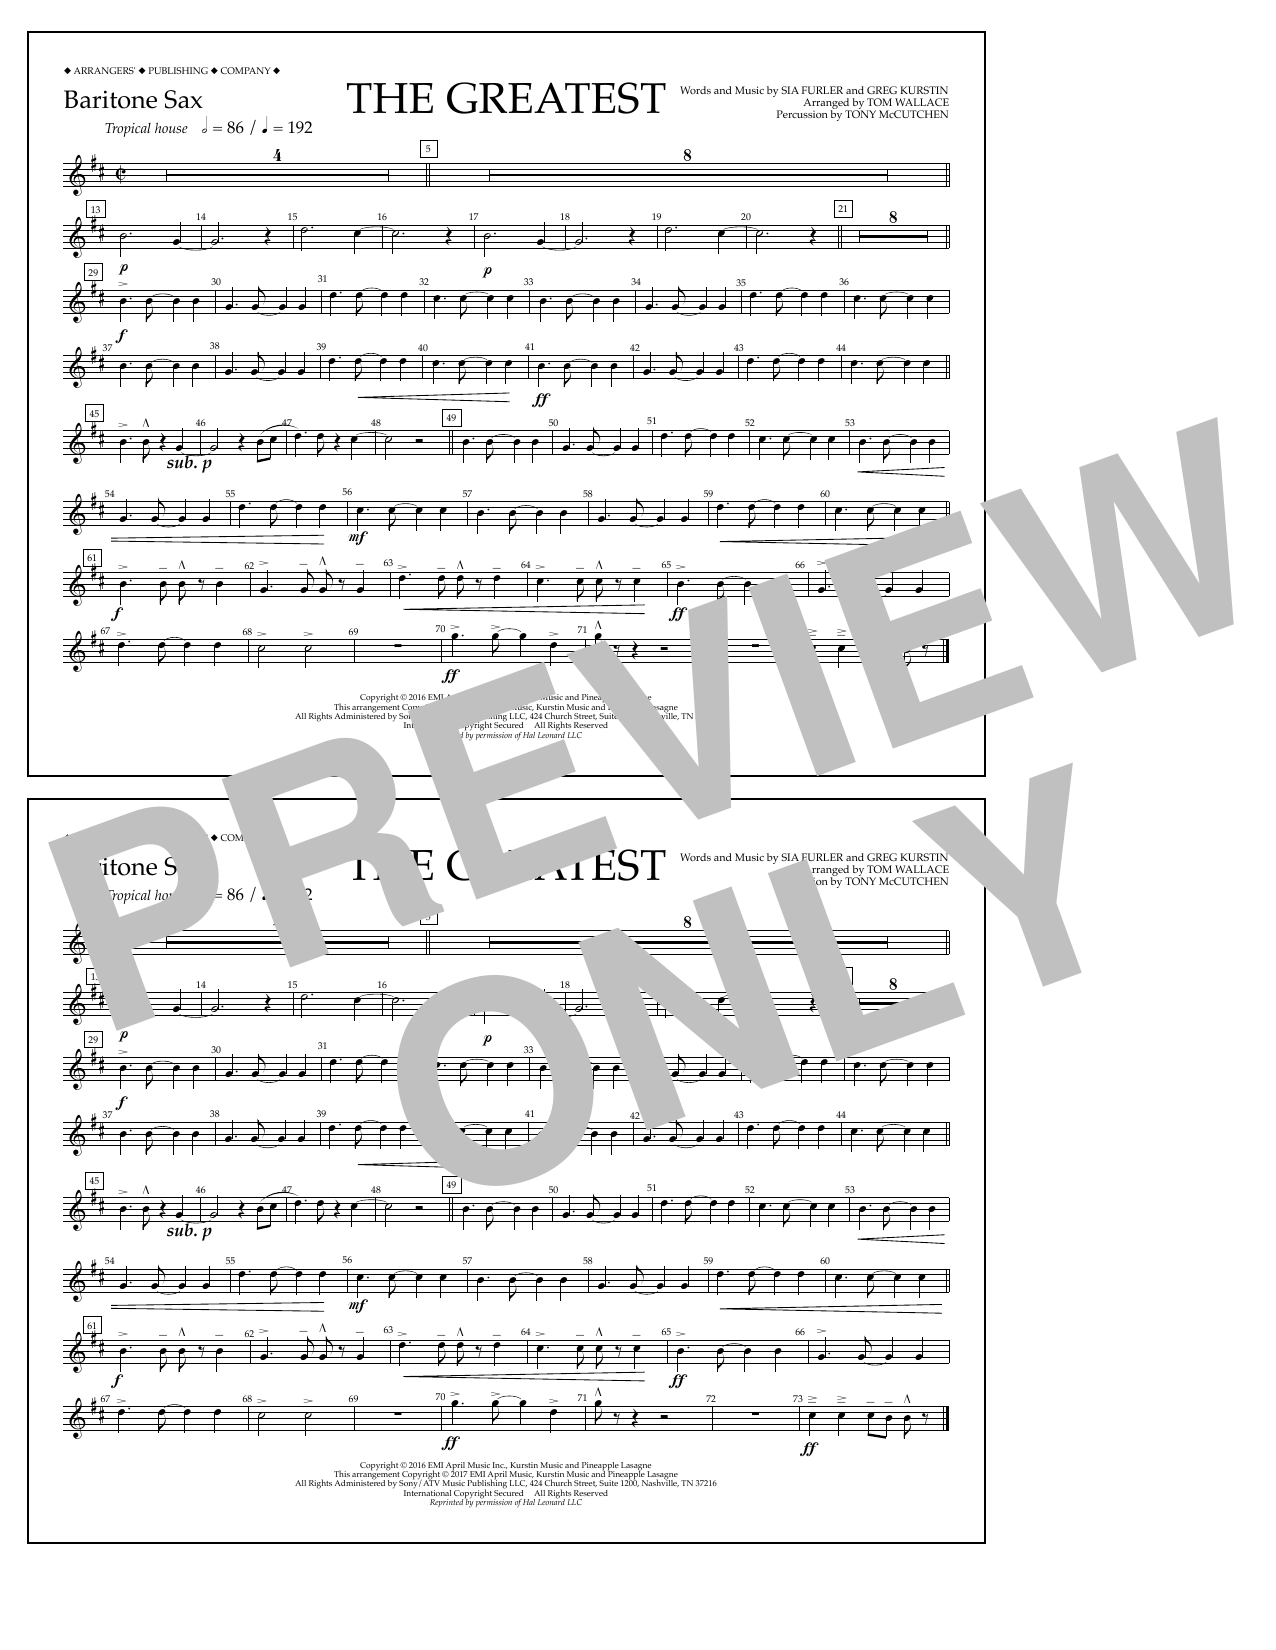 The Greatest - Baritone Sax Sheet Music